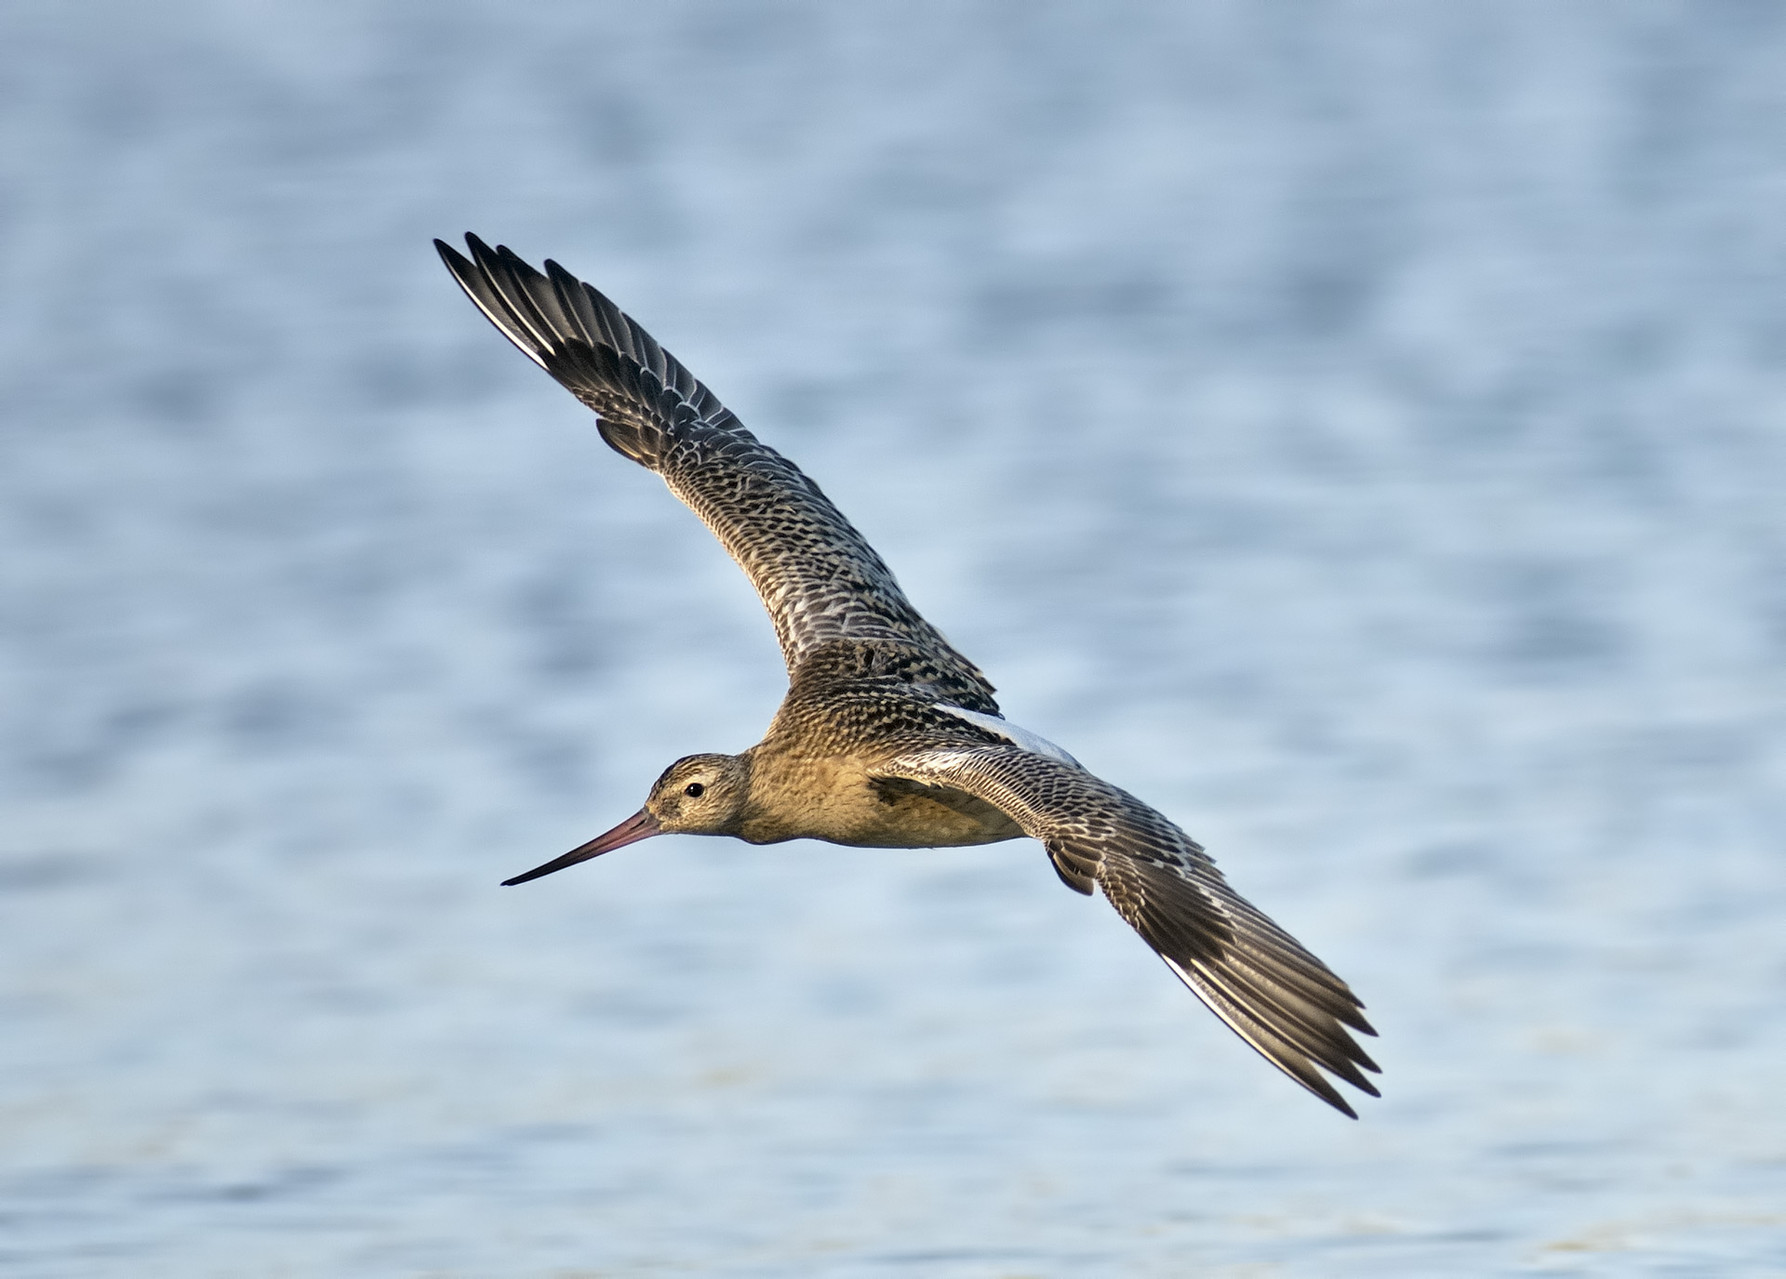 Pittima Minore - Bar-tailed Godwit